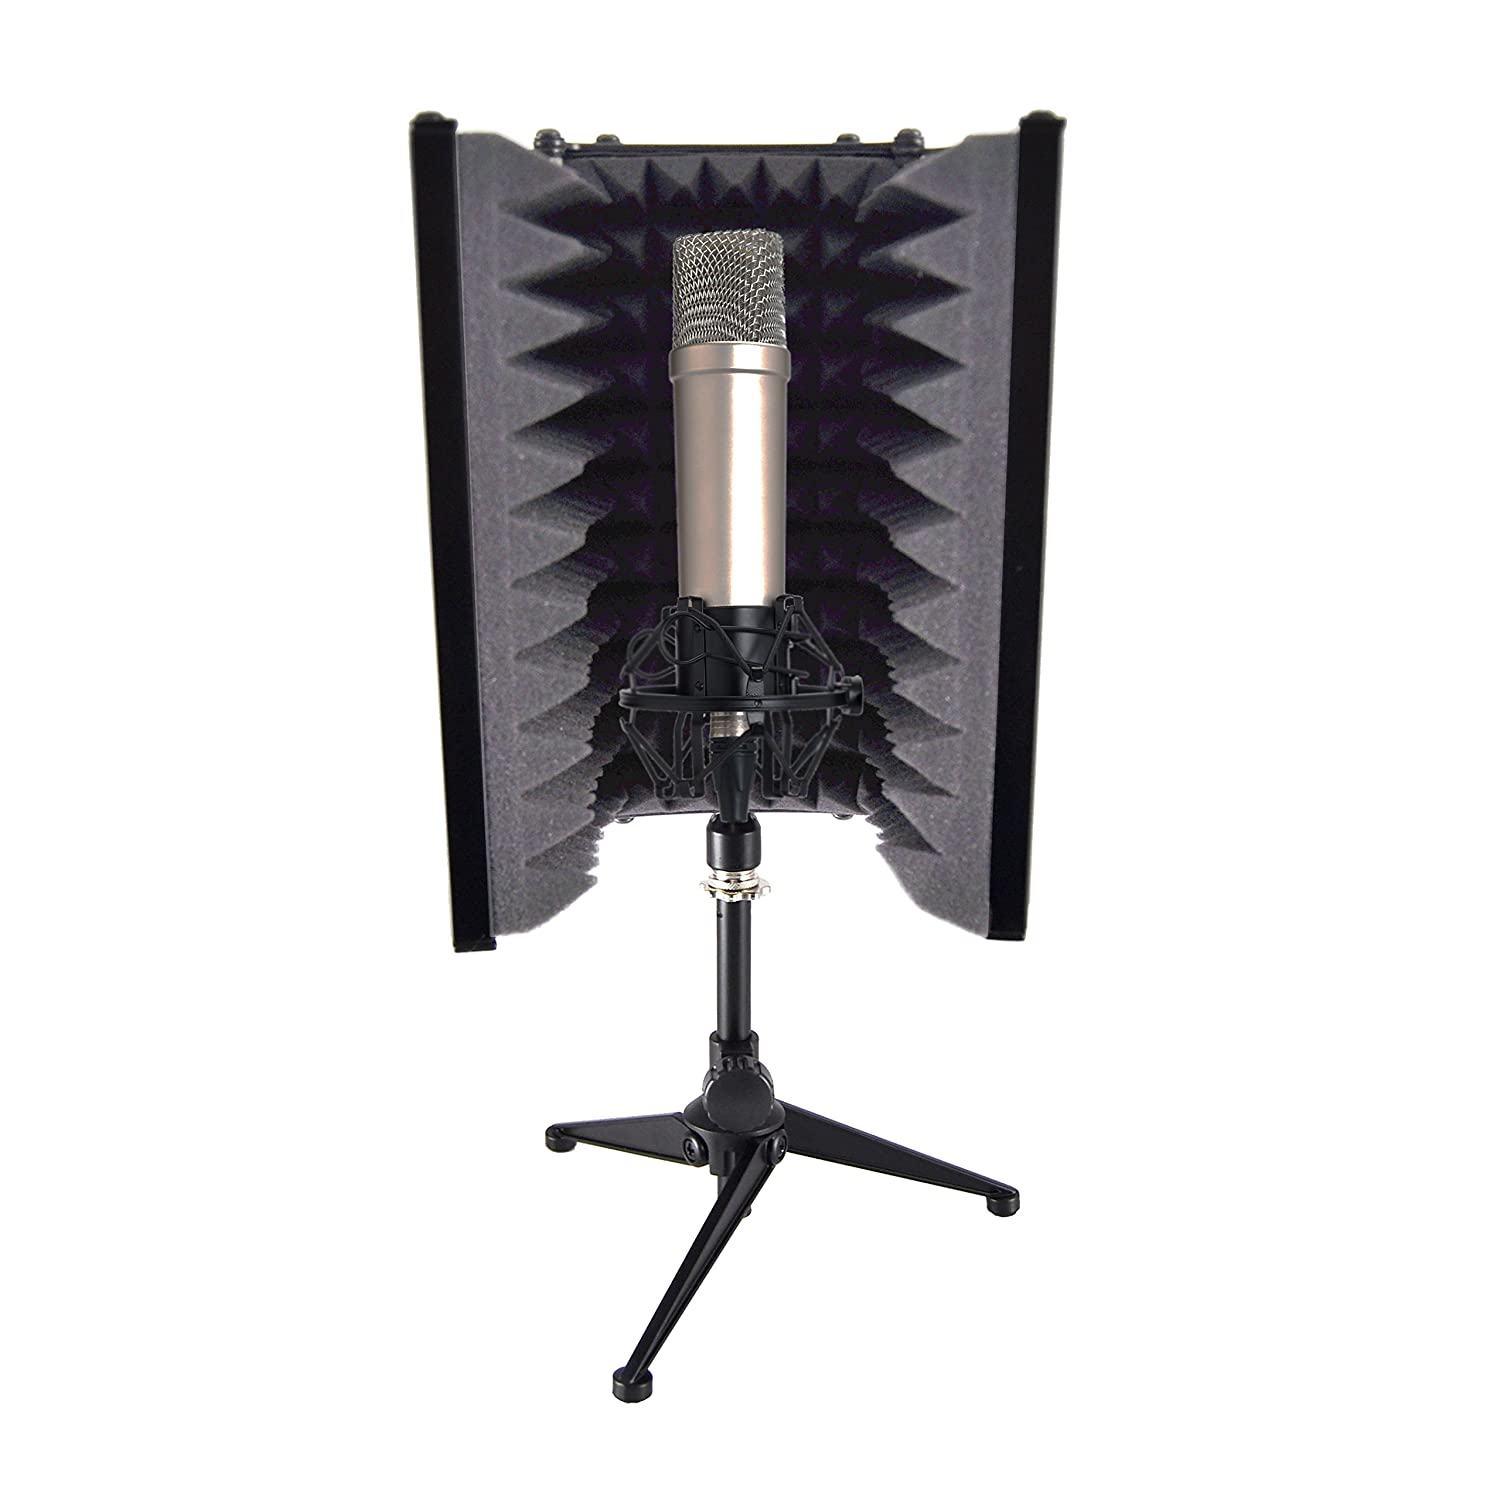 Pyle PSMRS08 Compact Microphone Isolation Shield, Studio Mic Sound Dampening Foam Reflector Sound Around